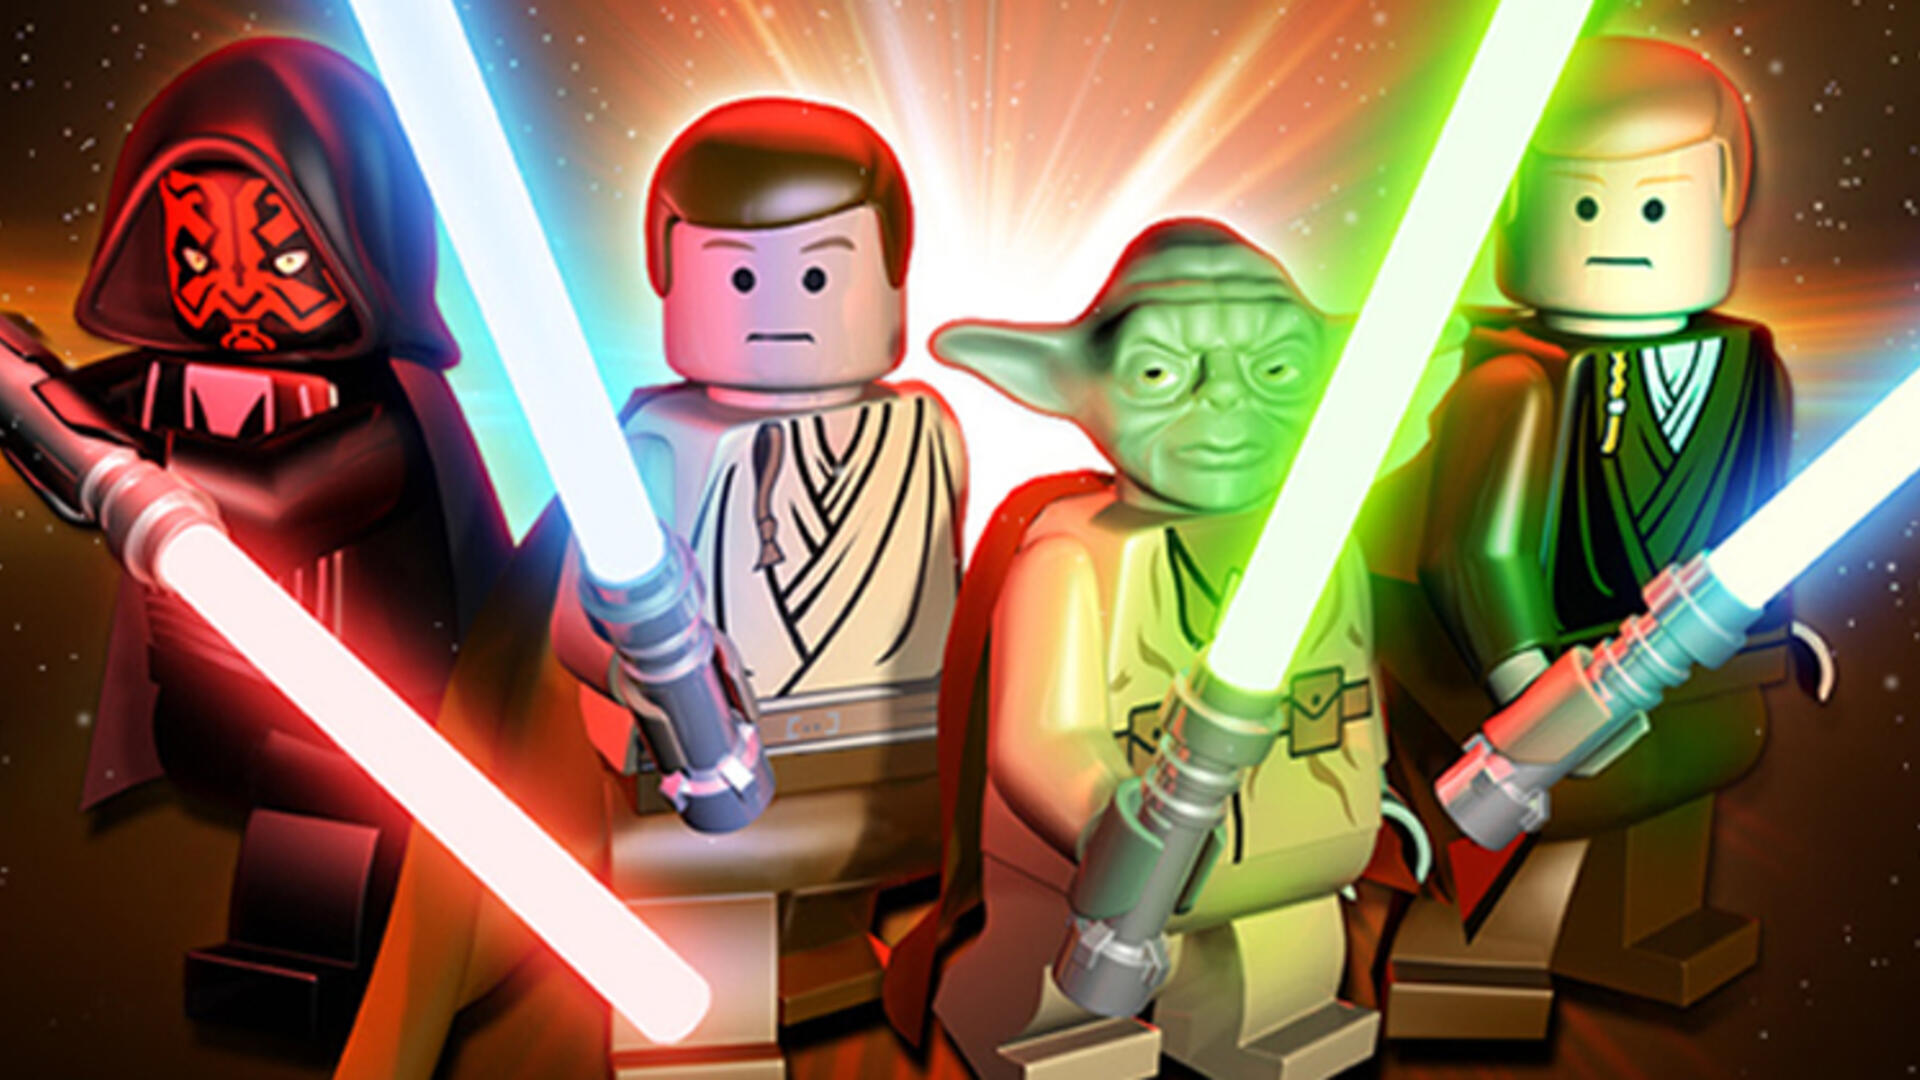 Lego Star Wars After 10 Years: The Game That Briefly Made the Prequels Likable